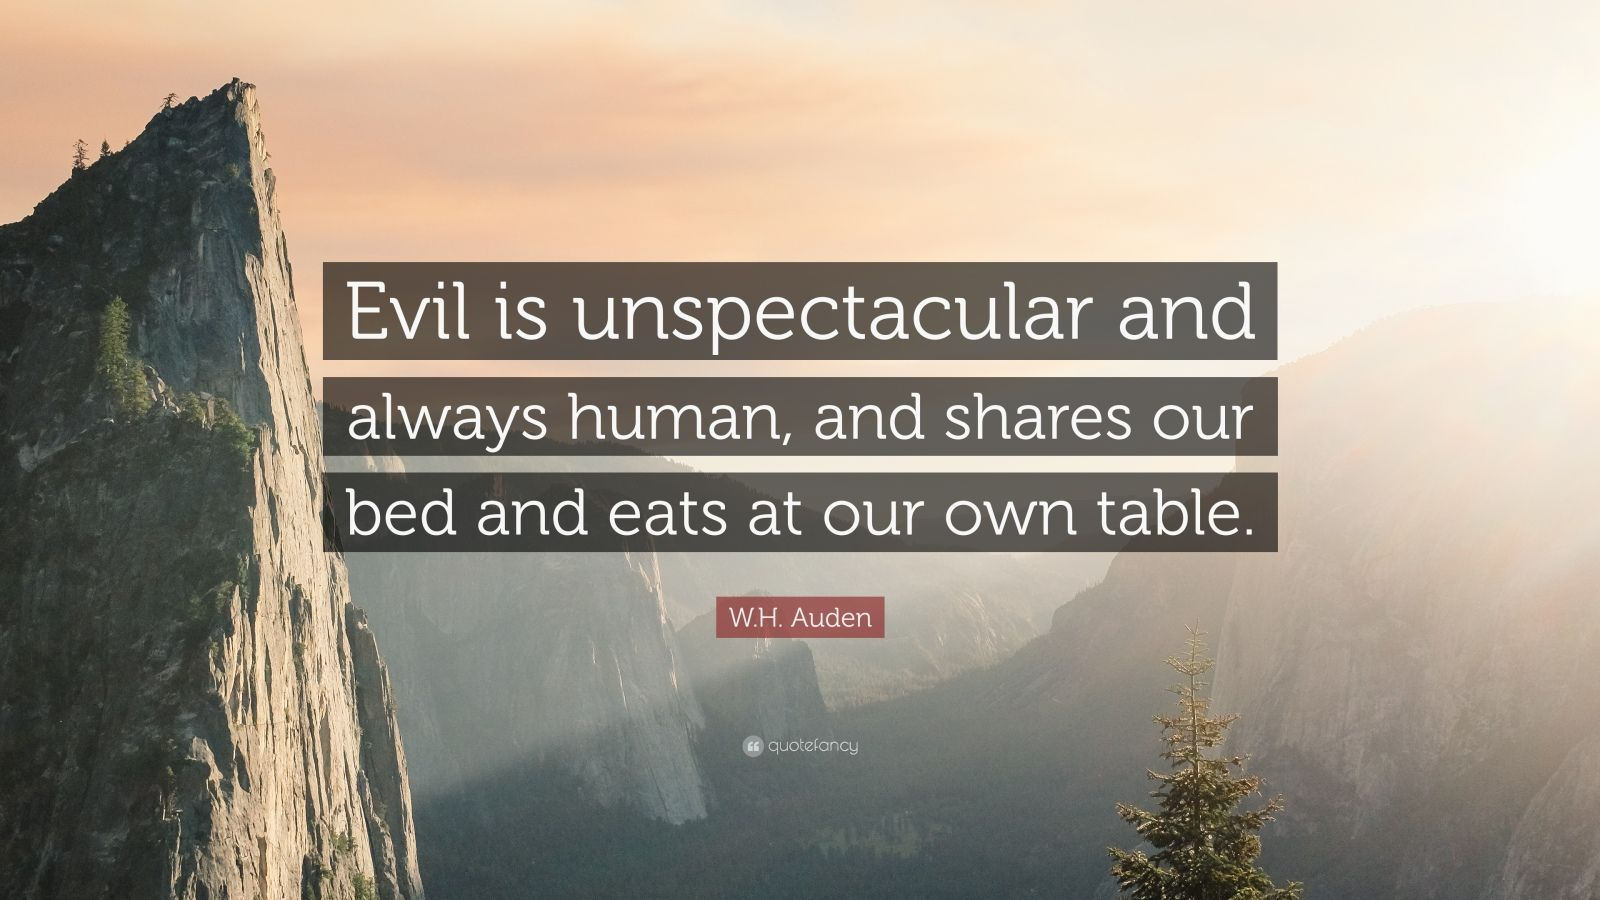 """W.H. Auden Quote: """"Evil is unspectacular and always human, and shares our bed and eats at our own table."""""""